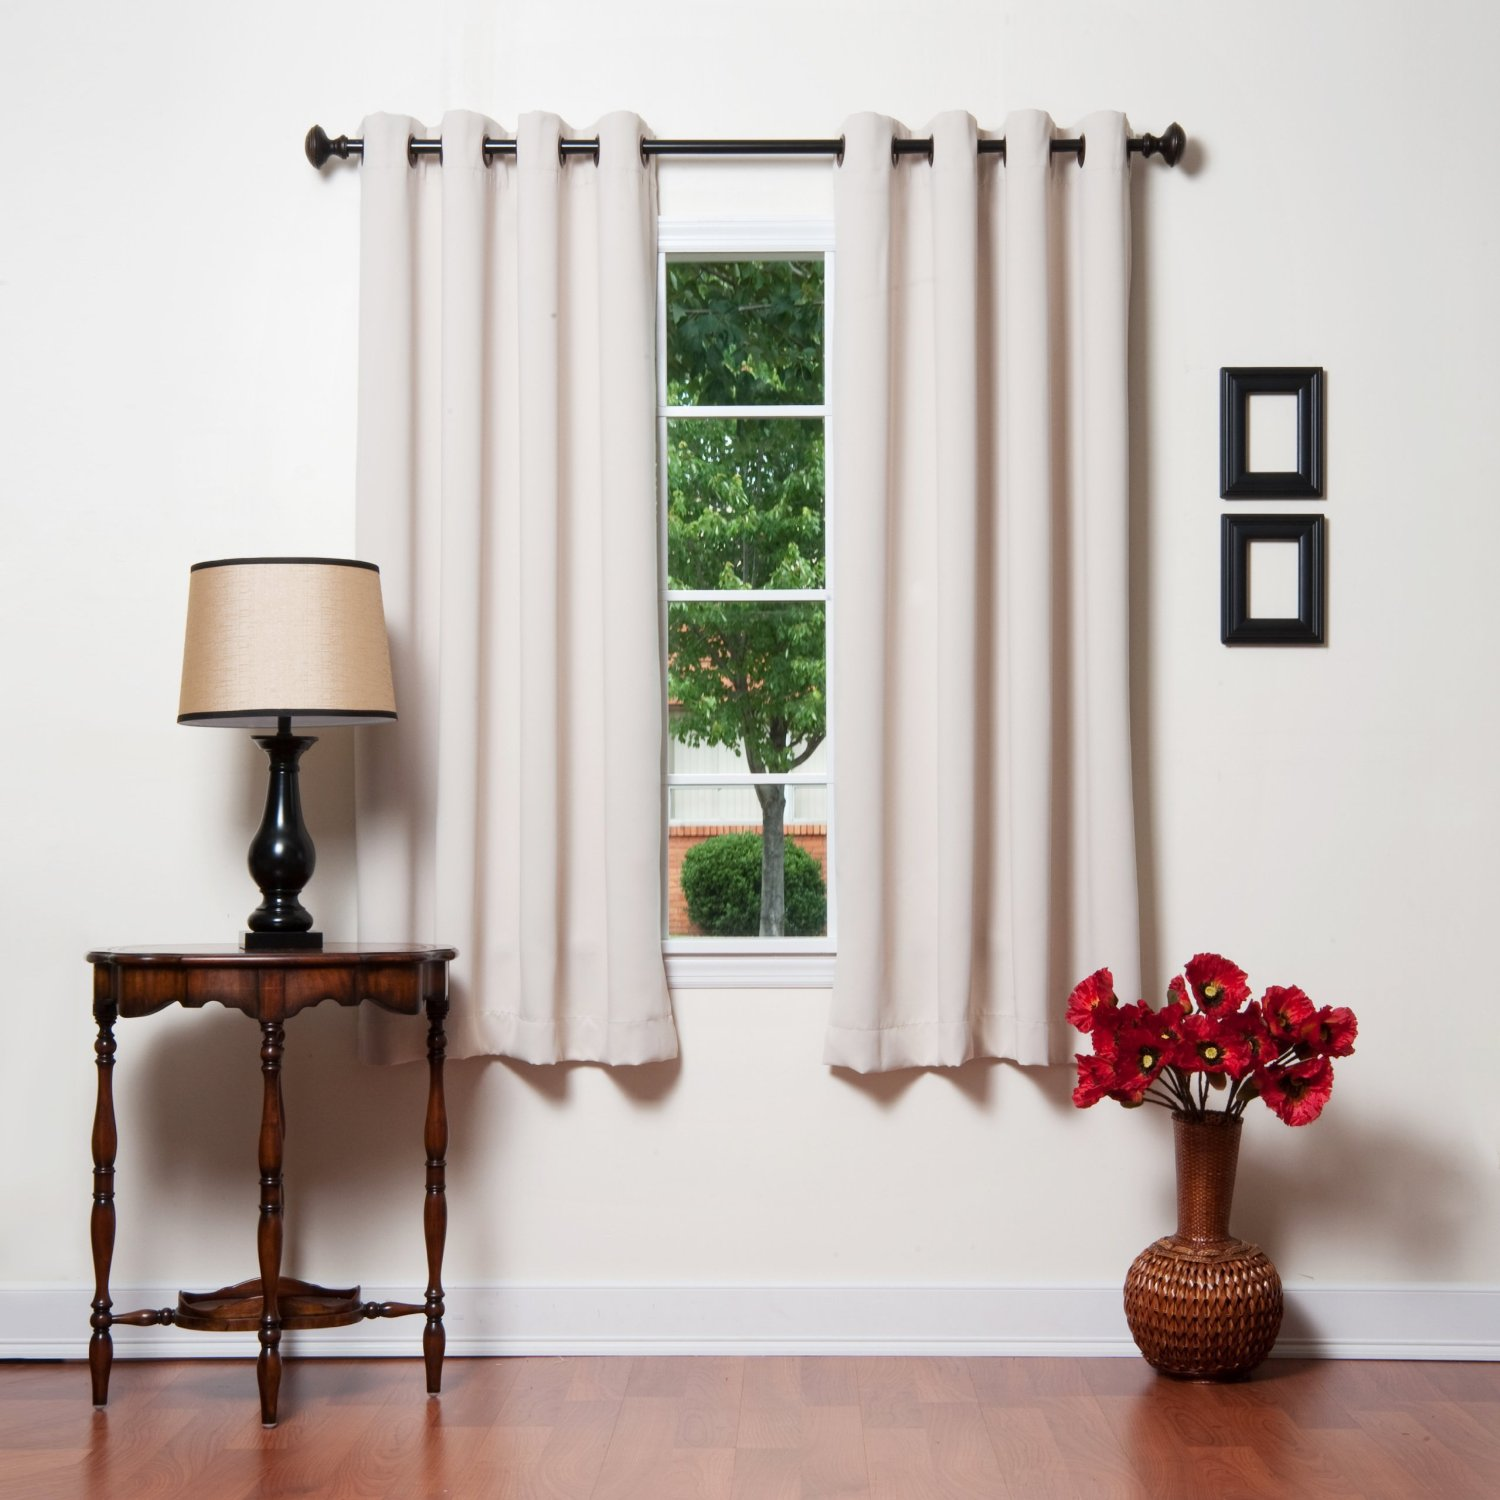 Cheap Blackout Curtains | Blackout Drape | Black Out Window Panels